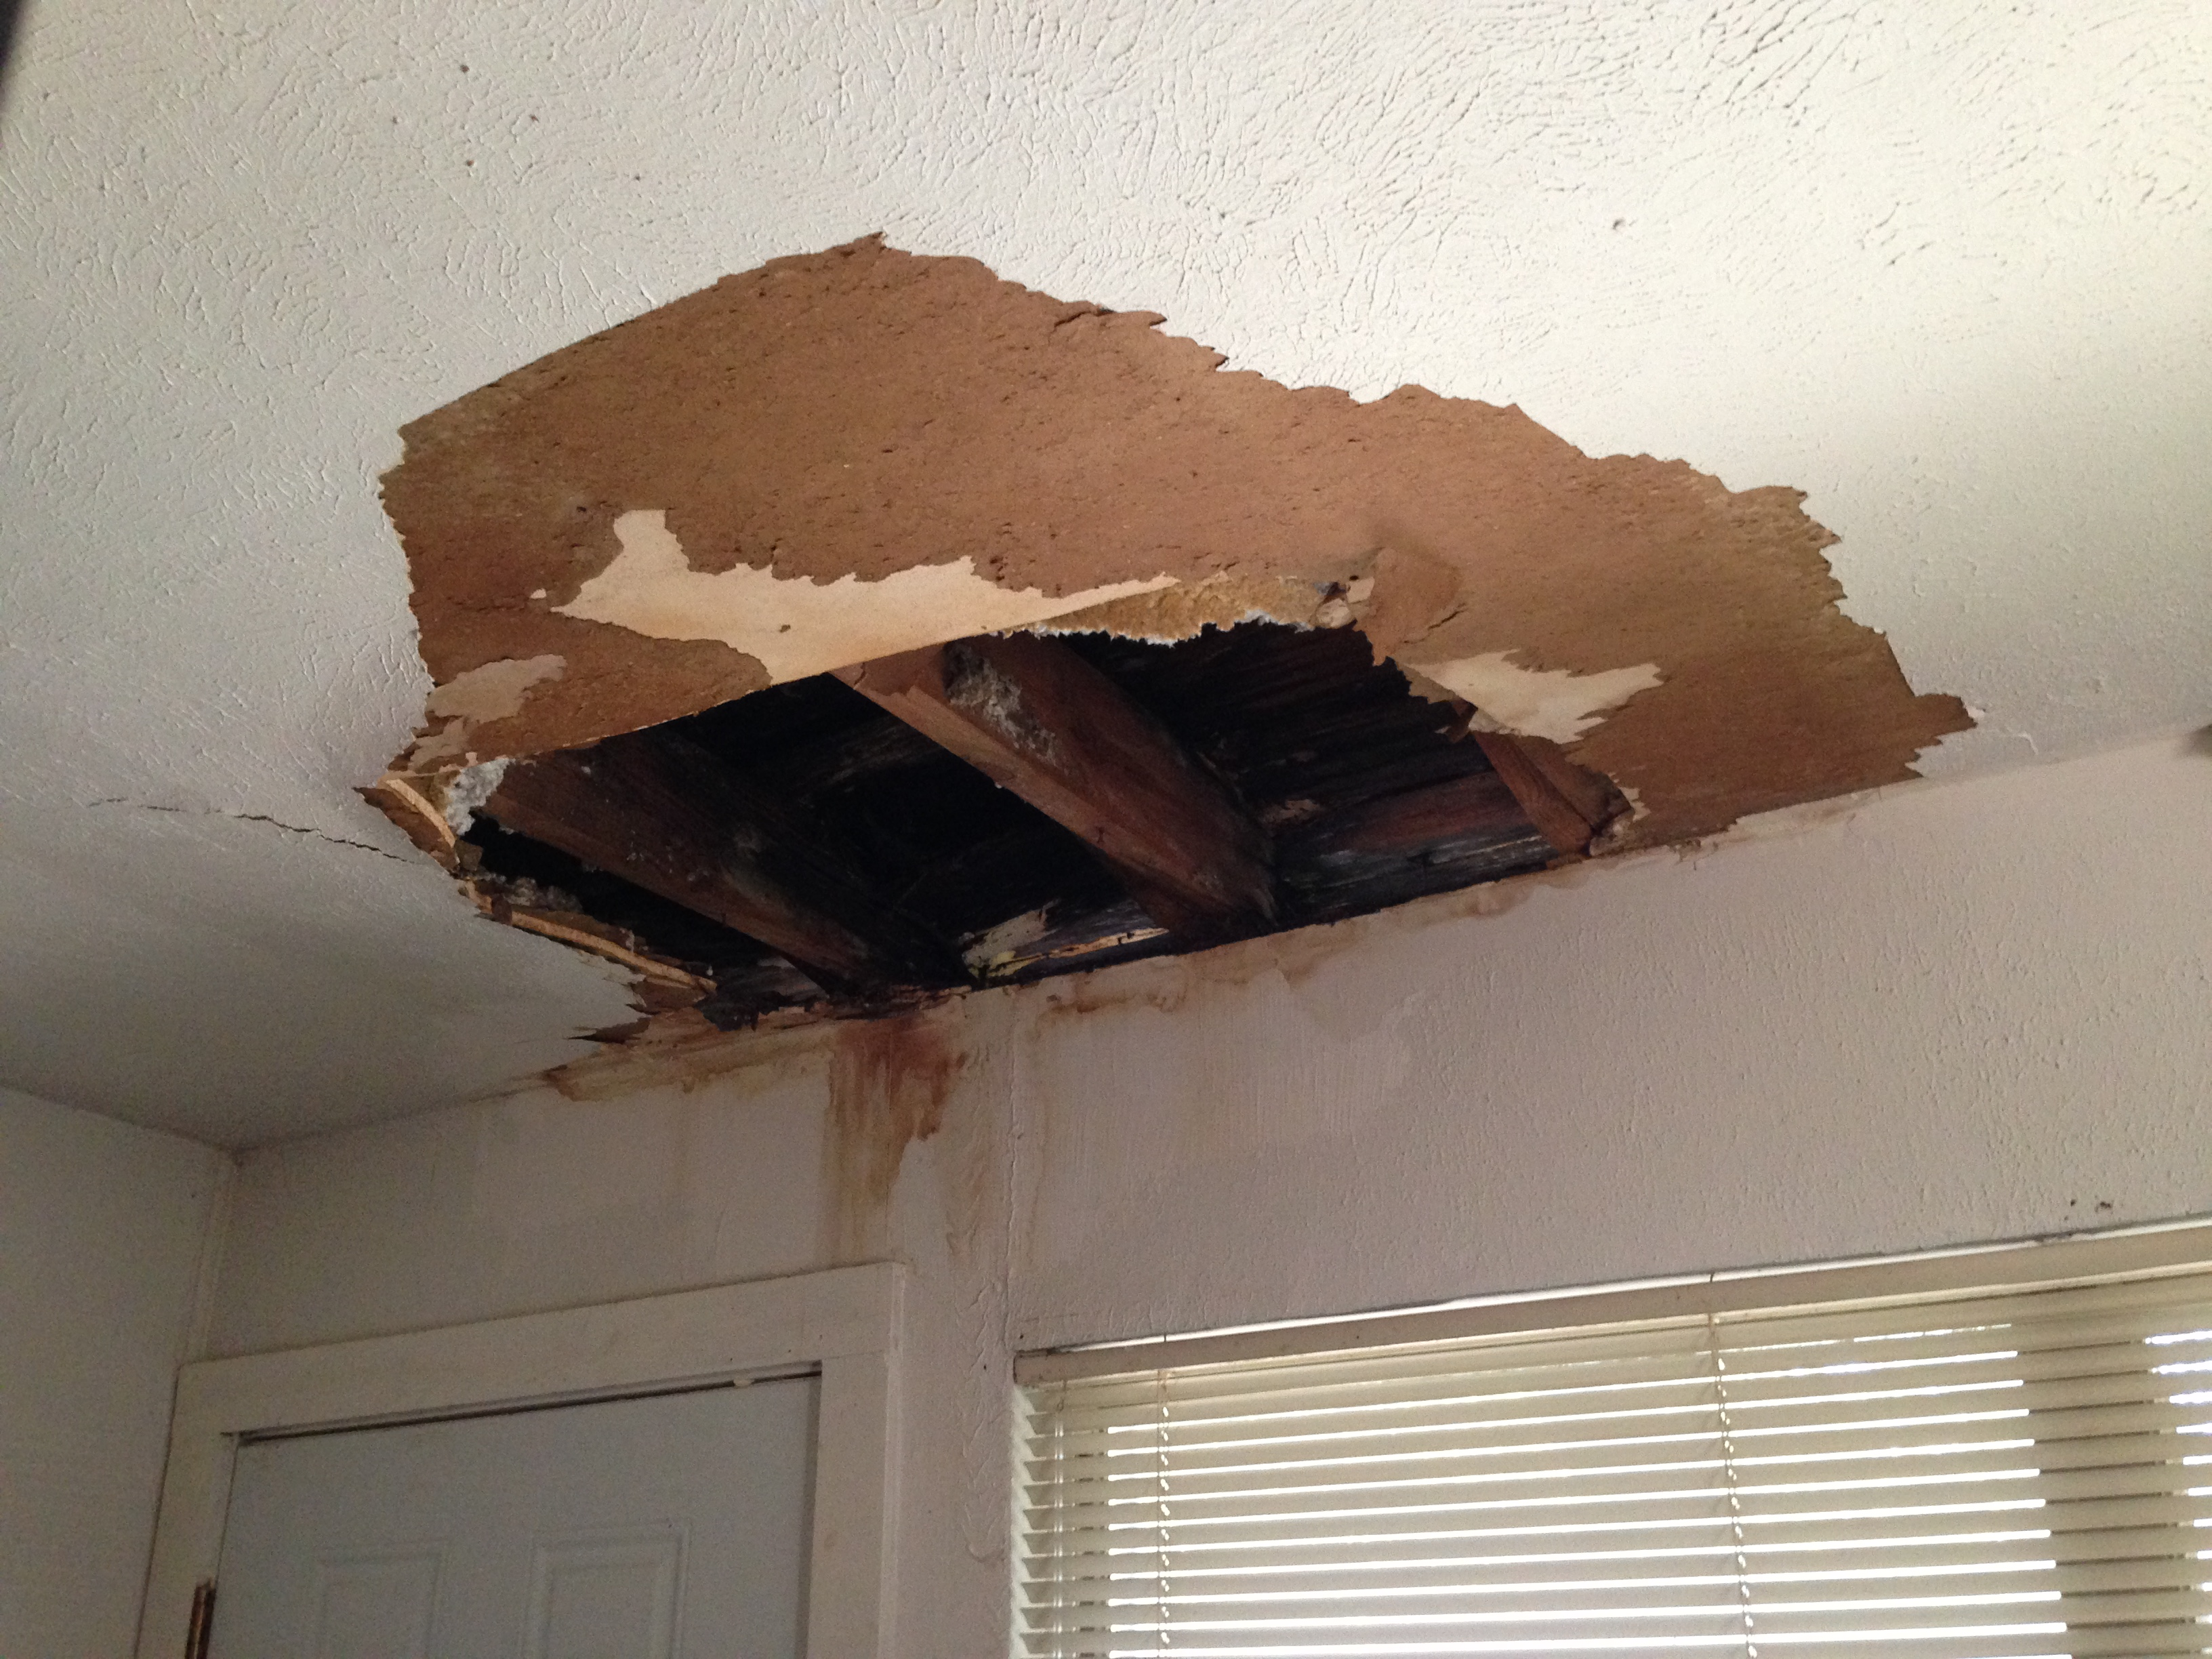 Multiple water caused stains and holes in her home's ceilings gave proof of the problem Huff was dealing with.